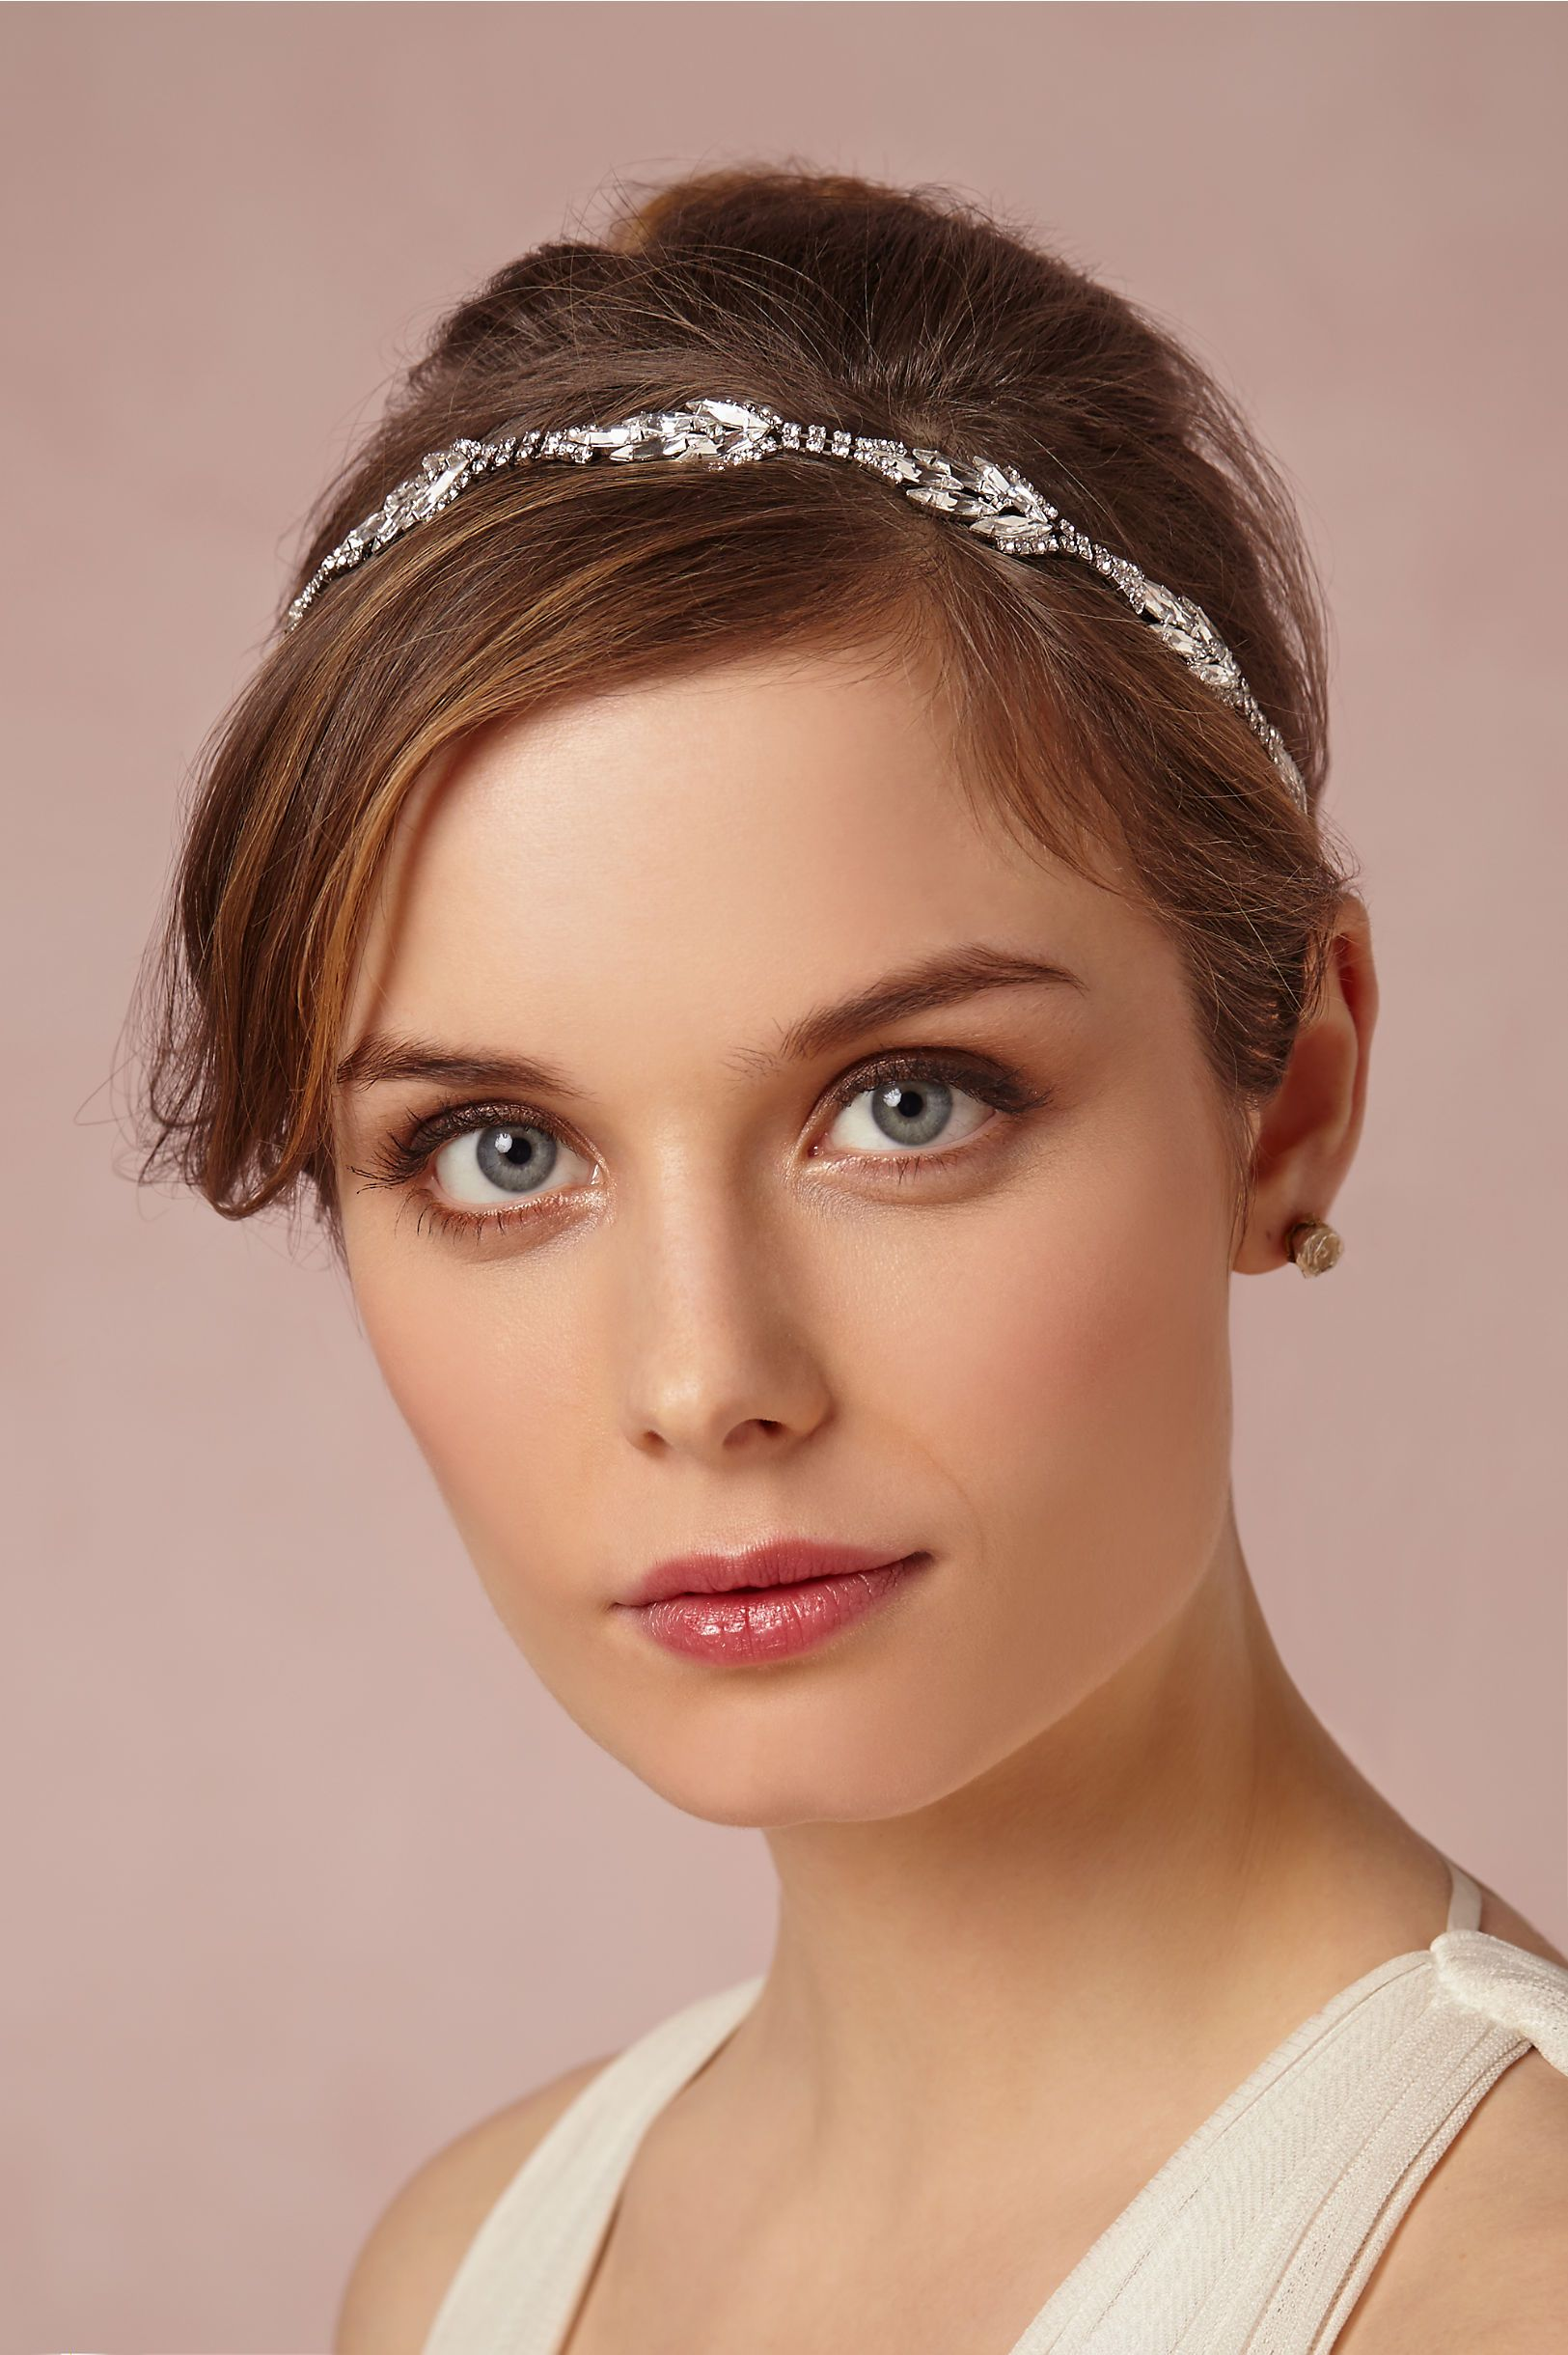 Verdure Head Wrap in Shoes & Accessories Headpieces at BHLDN